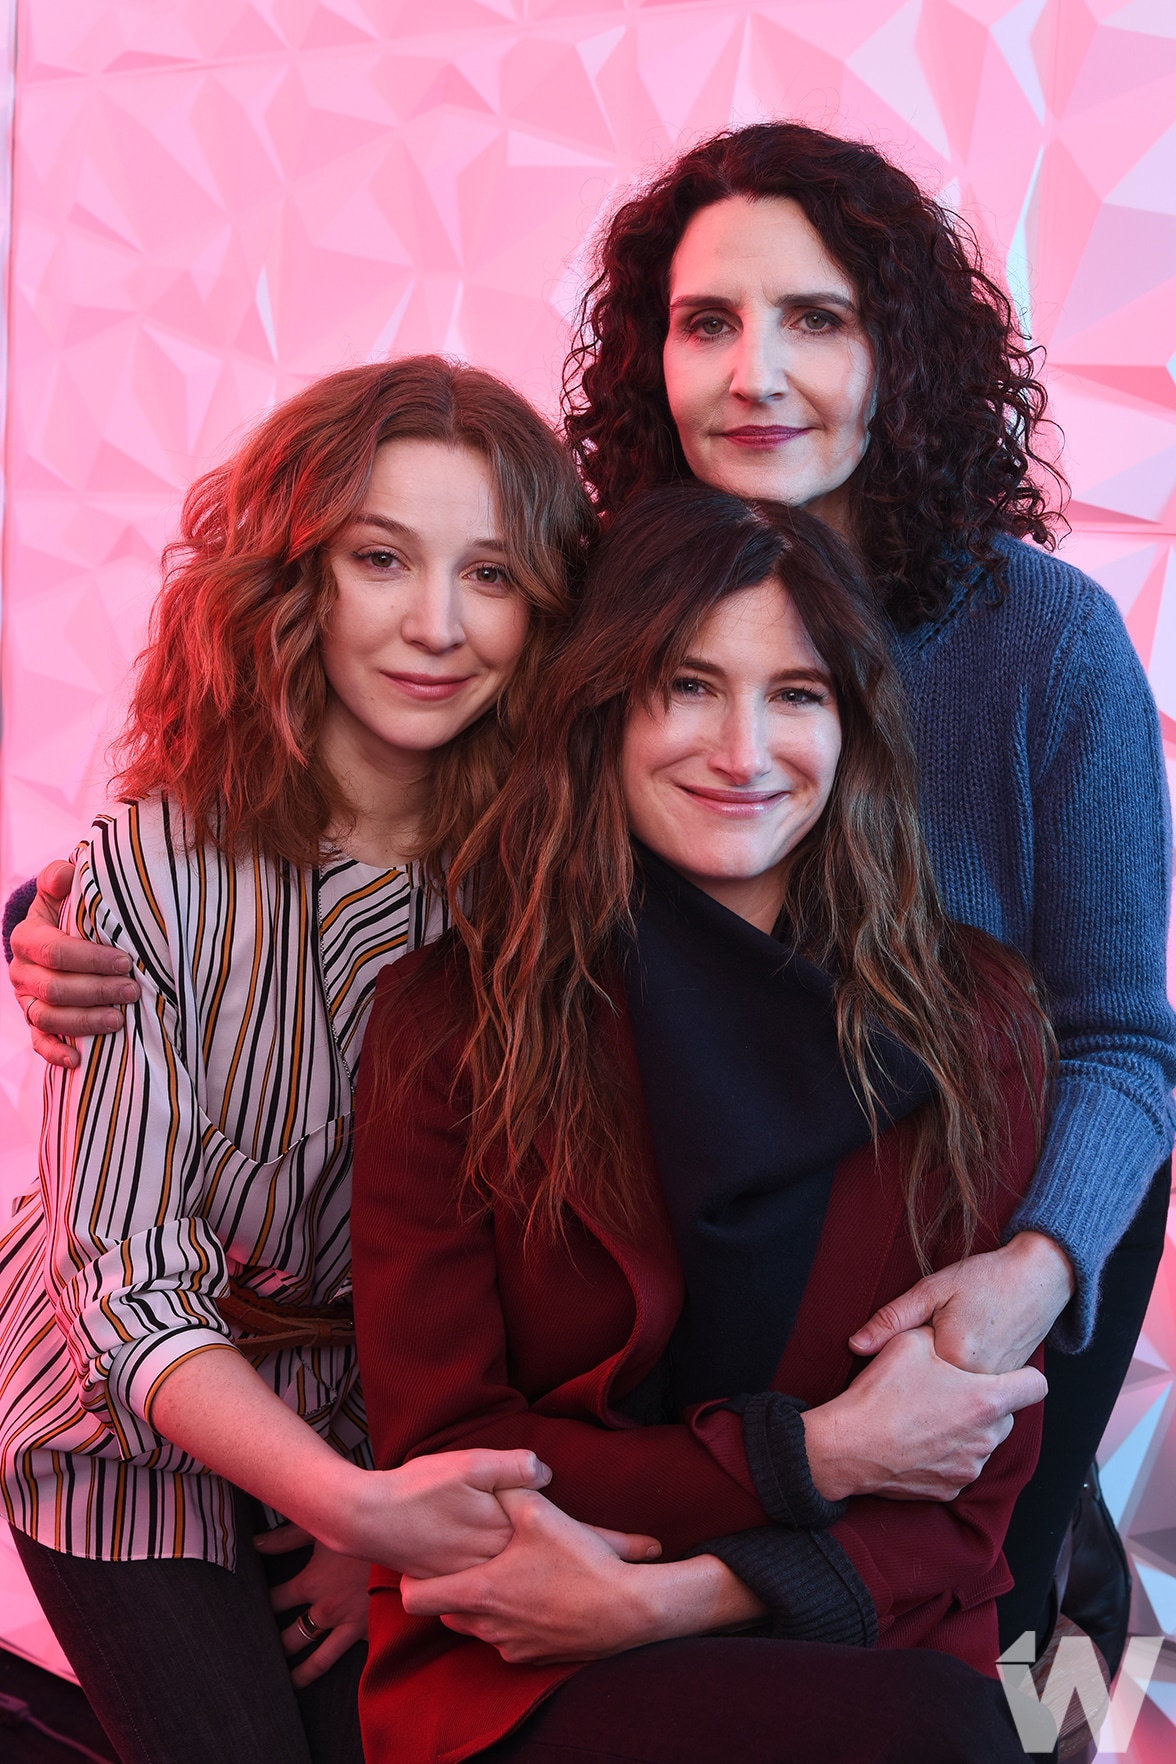 Private Life Kayli Carter, Kathryn Hahn, and Tamara Jenkins